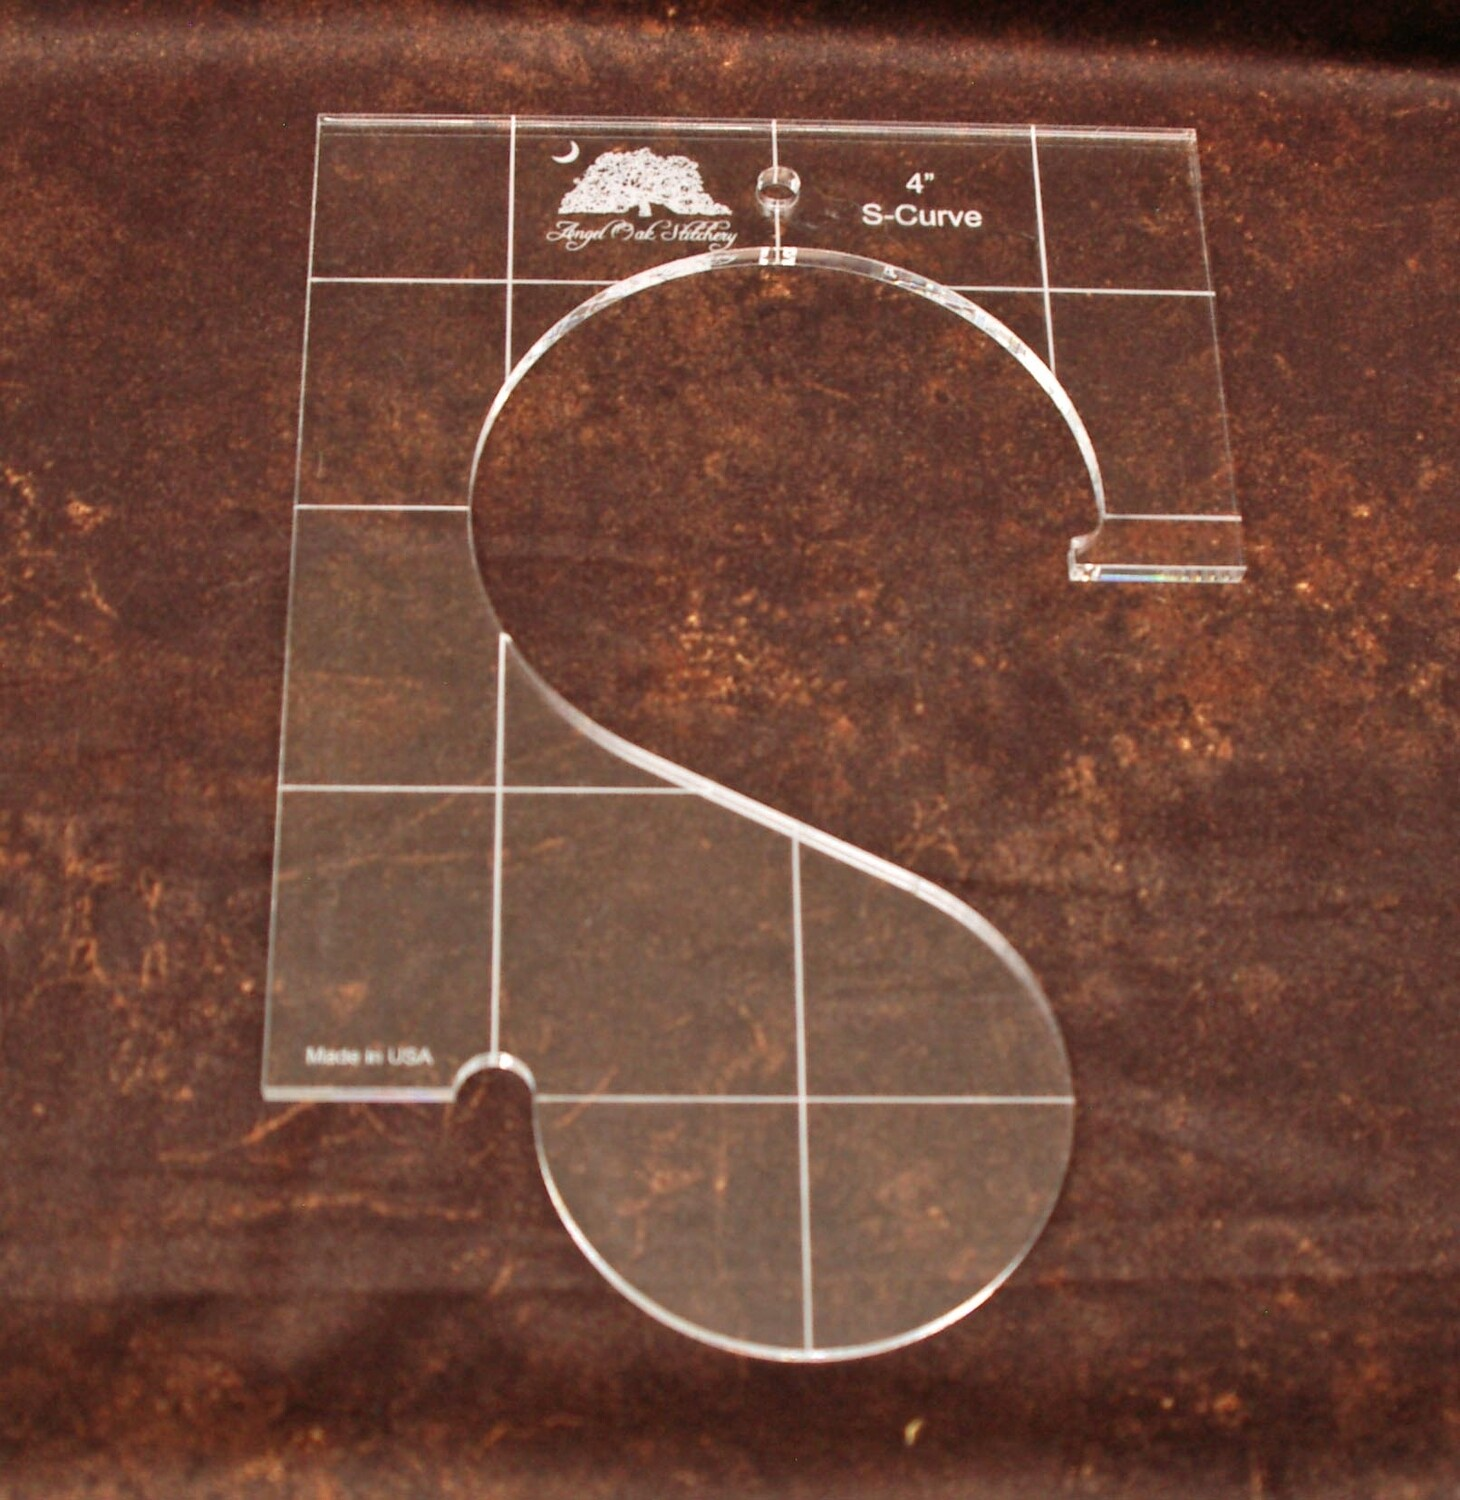 4 inch S-Curve Low Shank Rulerwork Quilting Template